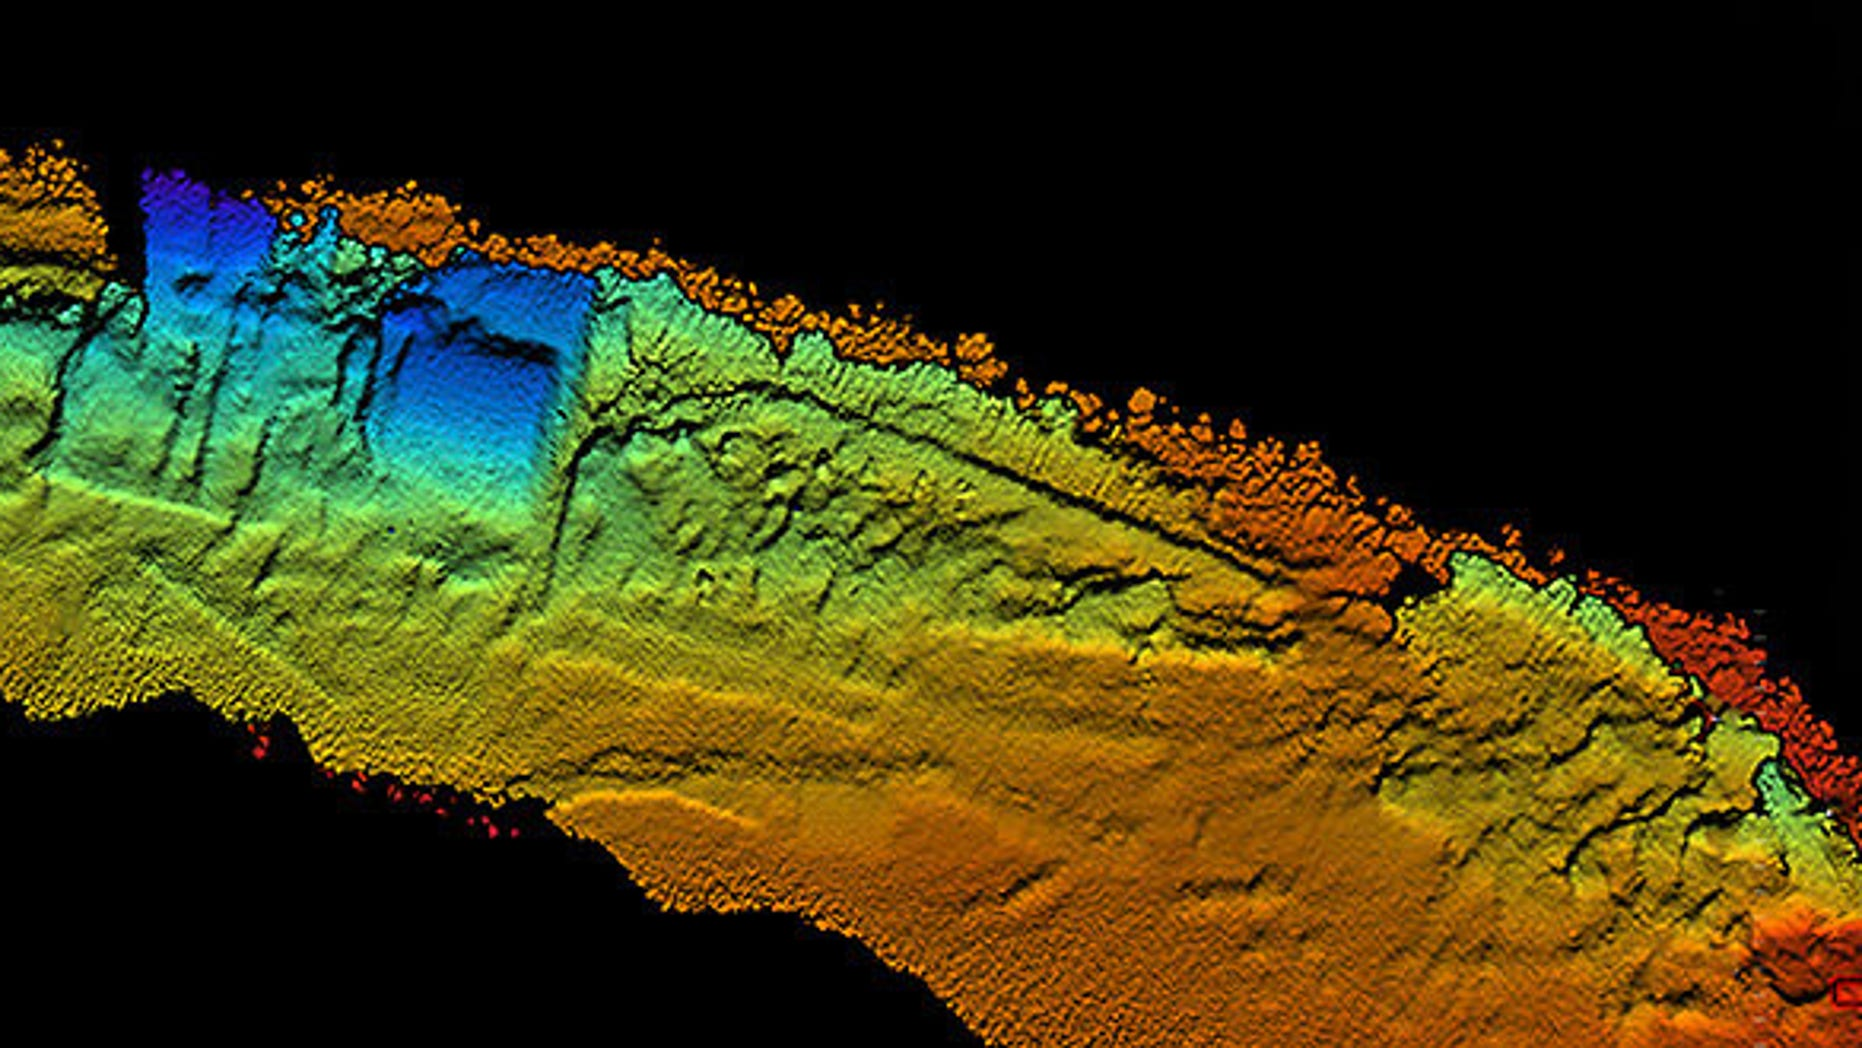 Coda Octopus 3-D Echoscope sonar, downward view of the shipwreck SS City of Chester with sternpost, (left side of sonar image) compound steam engine and boilers (in blue middle of sonar image), and bow (right side of sonar image).